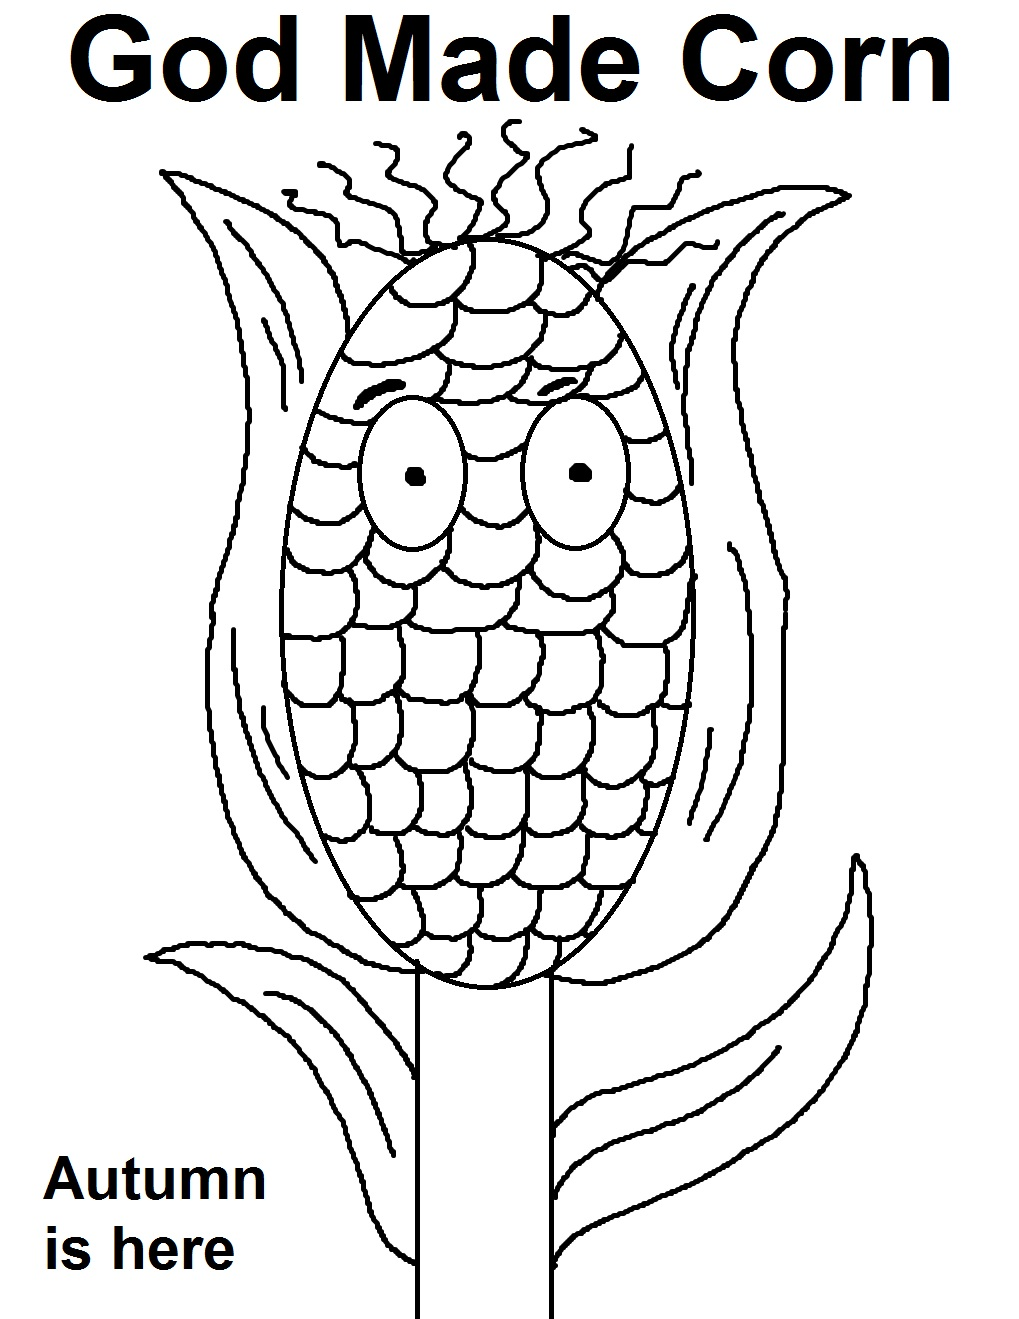 Harvest Corn Coloring Page God Made Corn Coloring Page